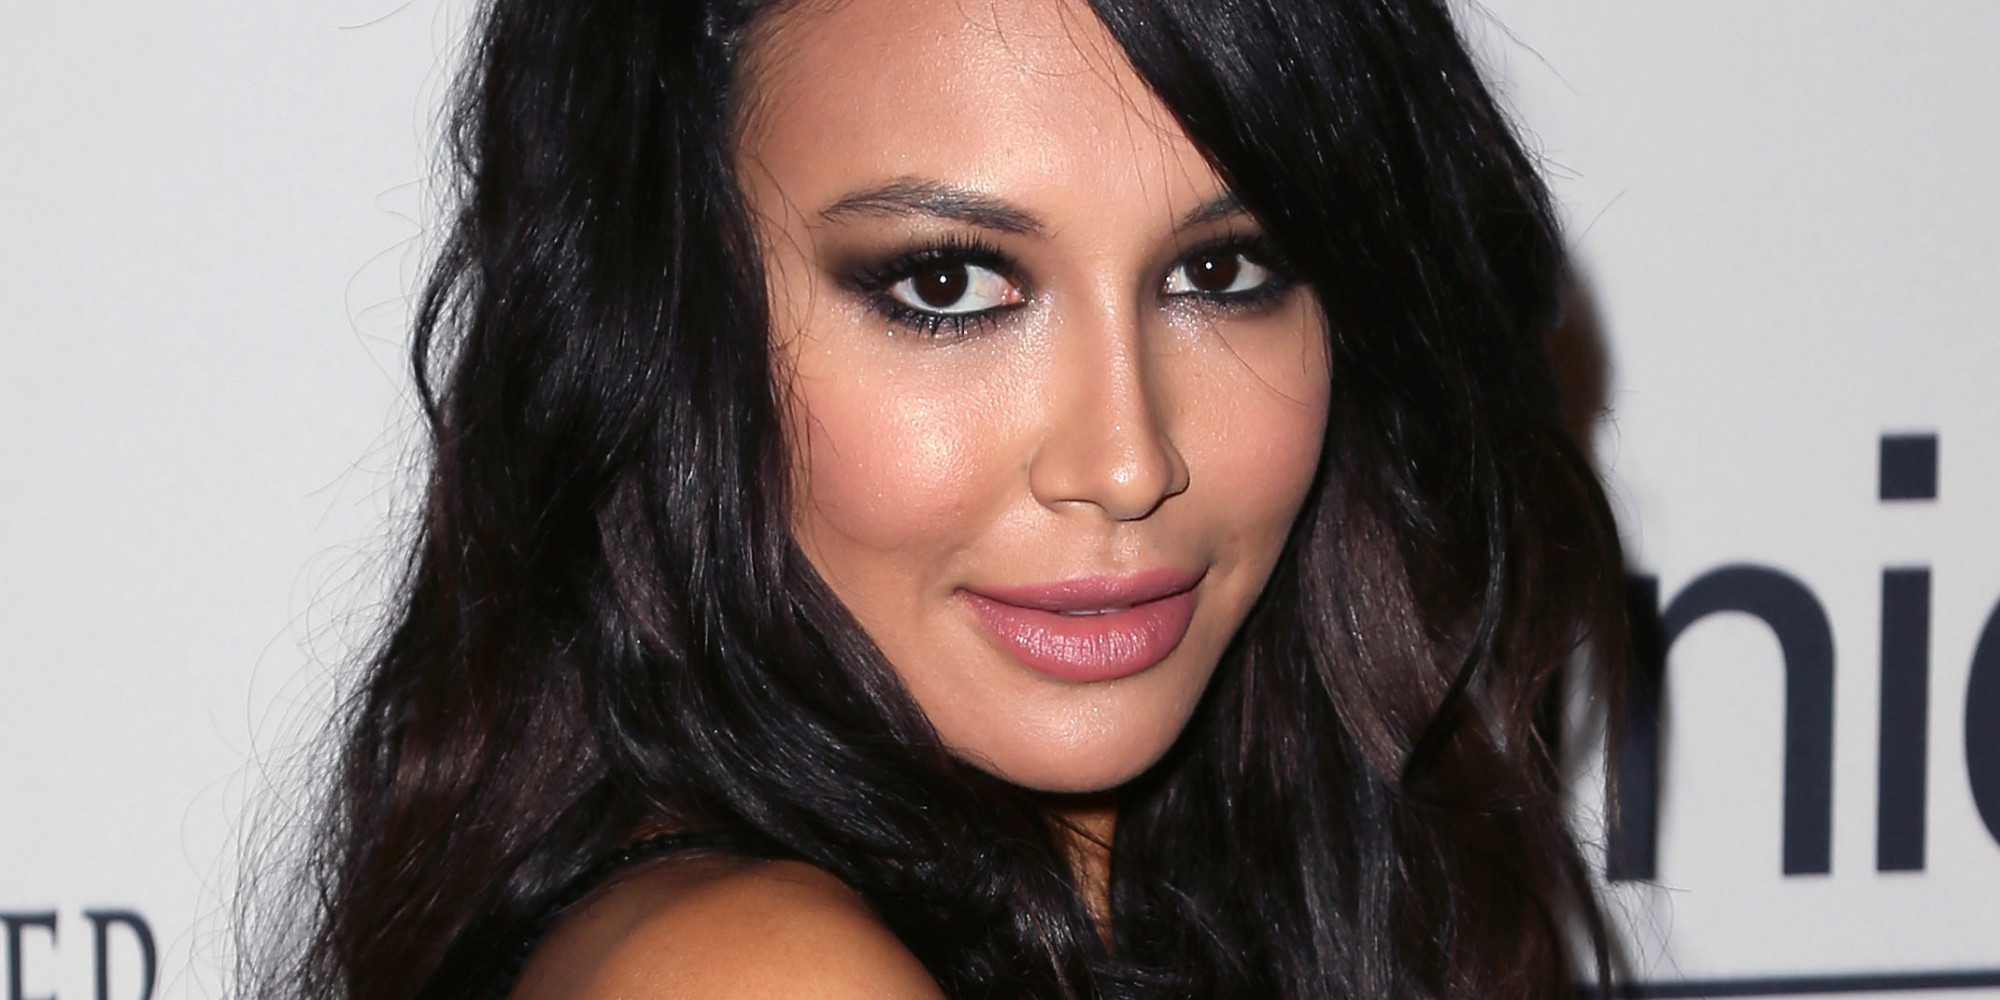 naya rivera smile cute wallpaper